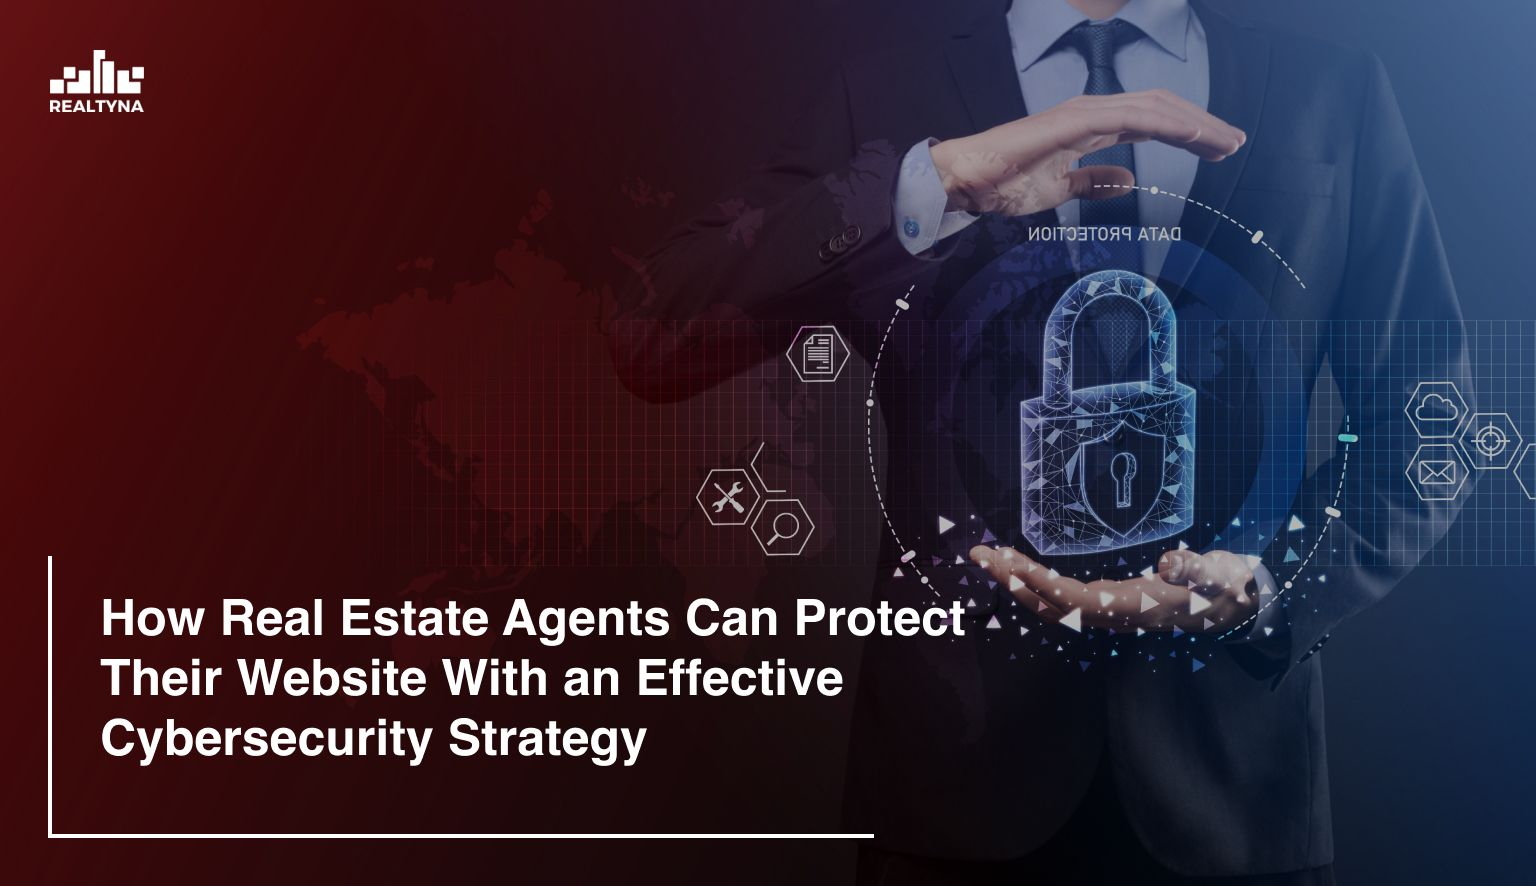 Cybersecurity Strategy for Real Estate Agents